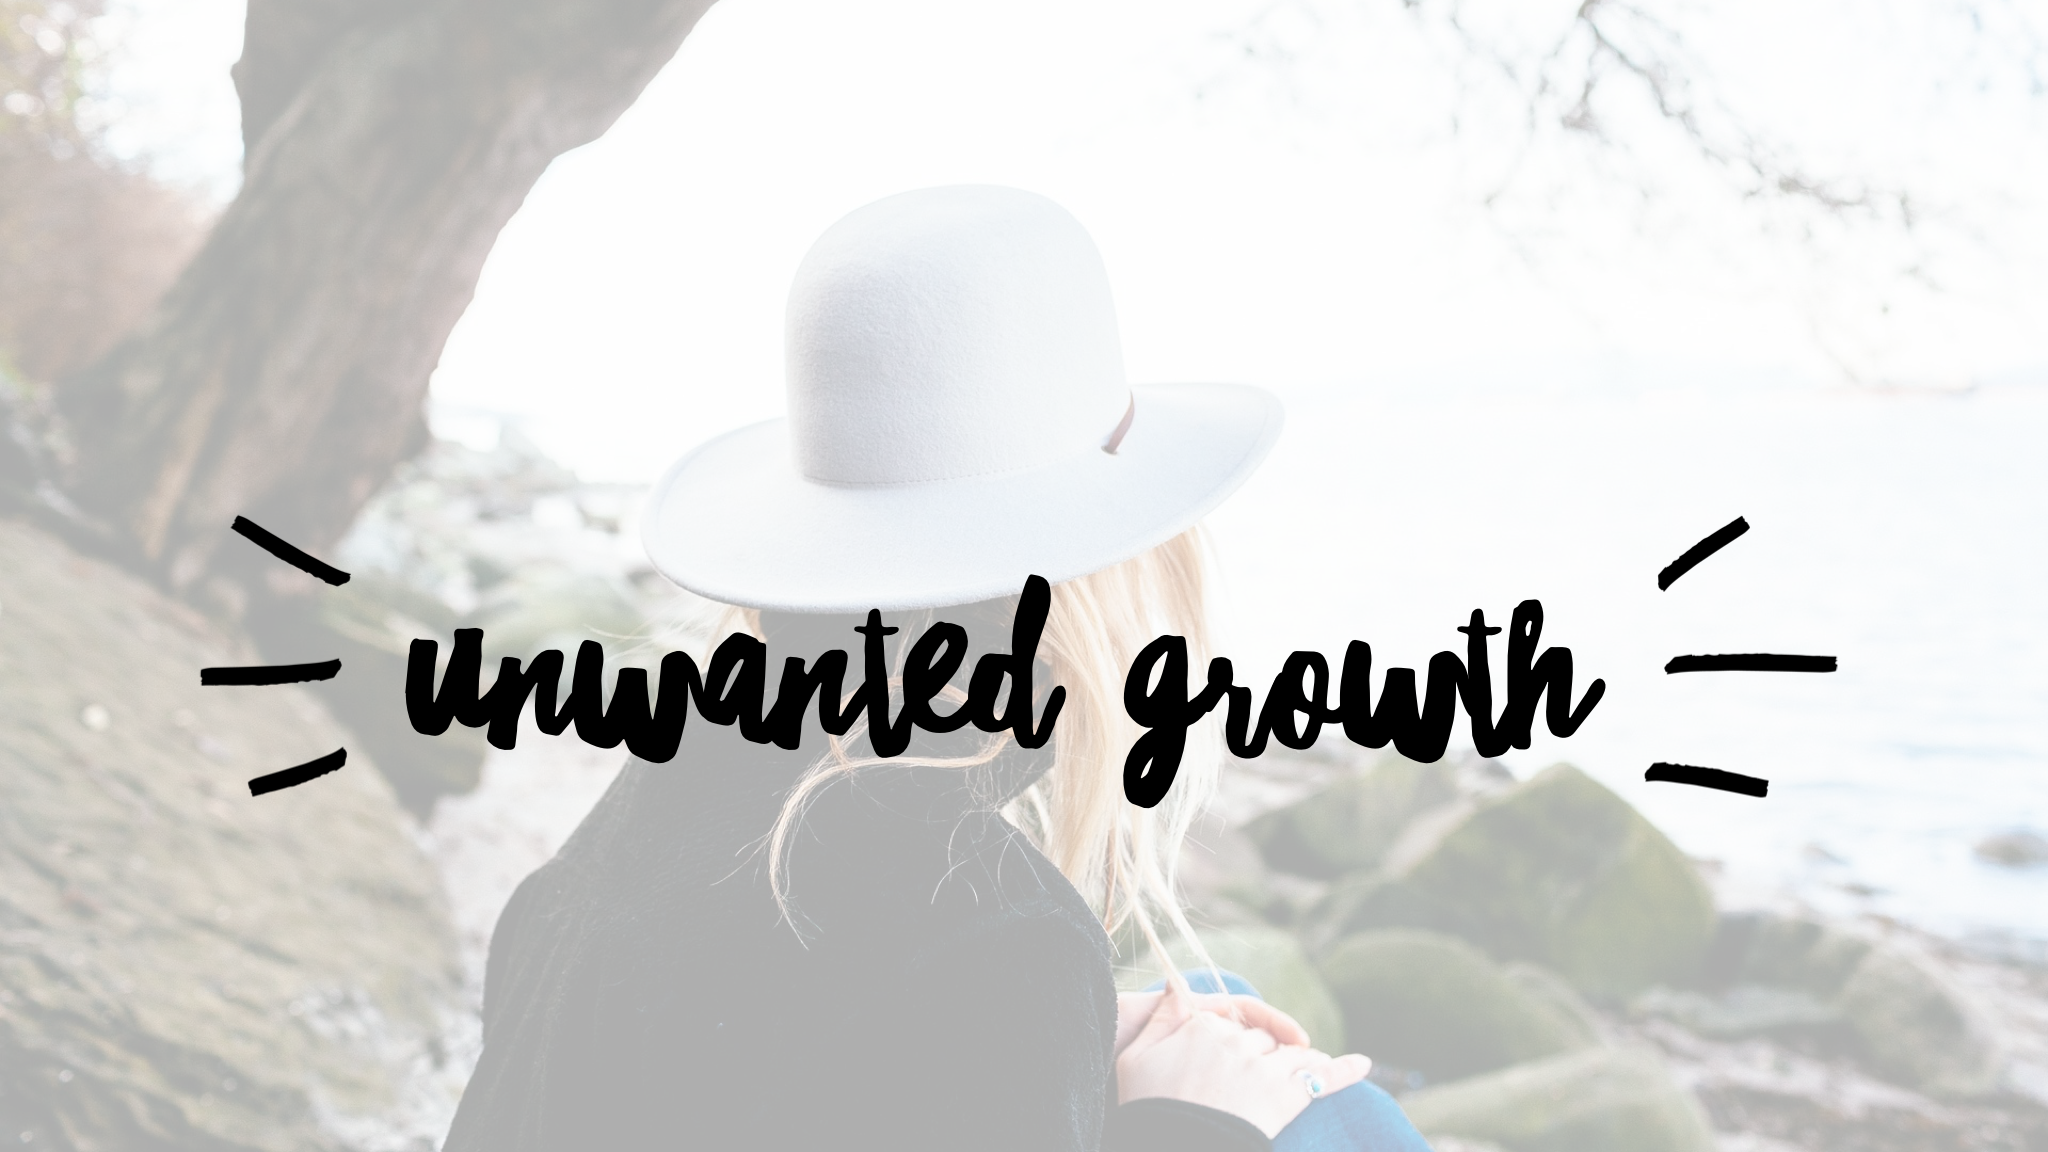 Unwanted Growth